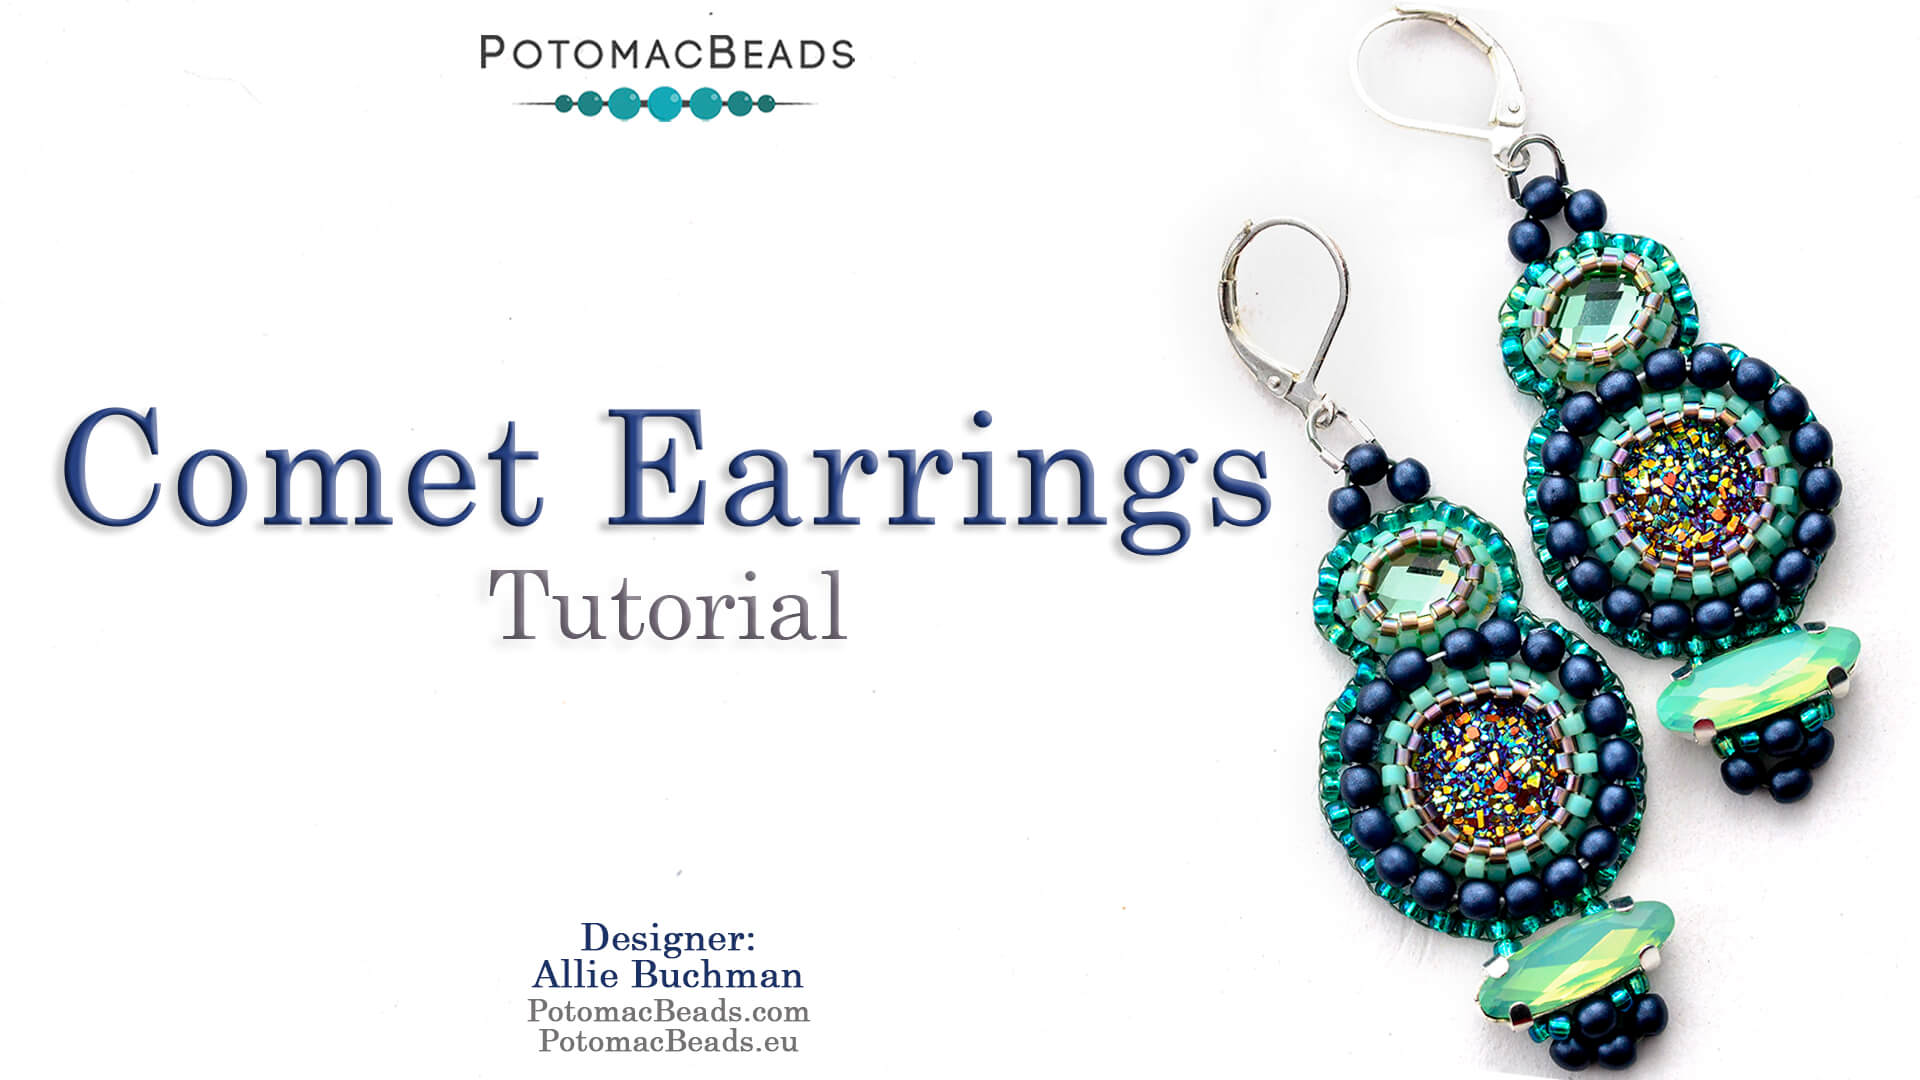 How to Bead / Videos Sorted by Beads / Cabochon Videos / Comet Earrings Tutorial